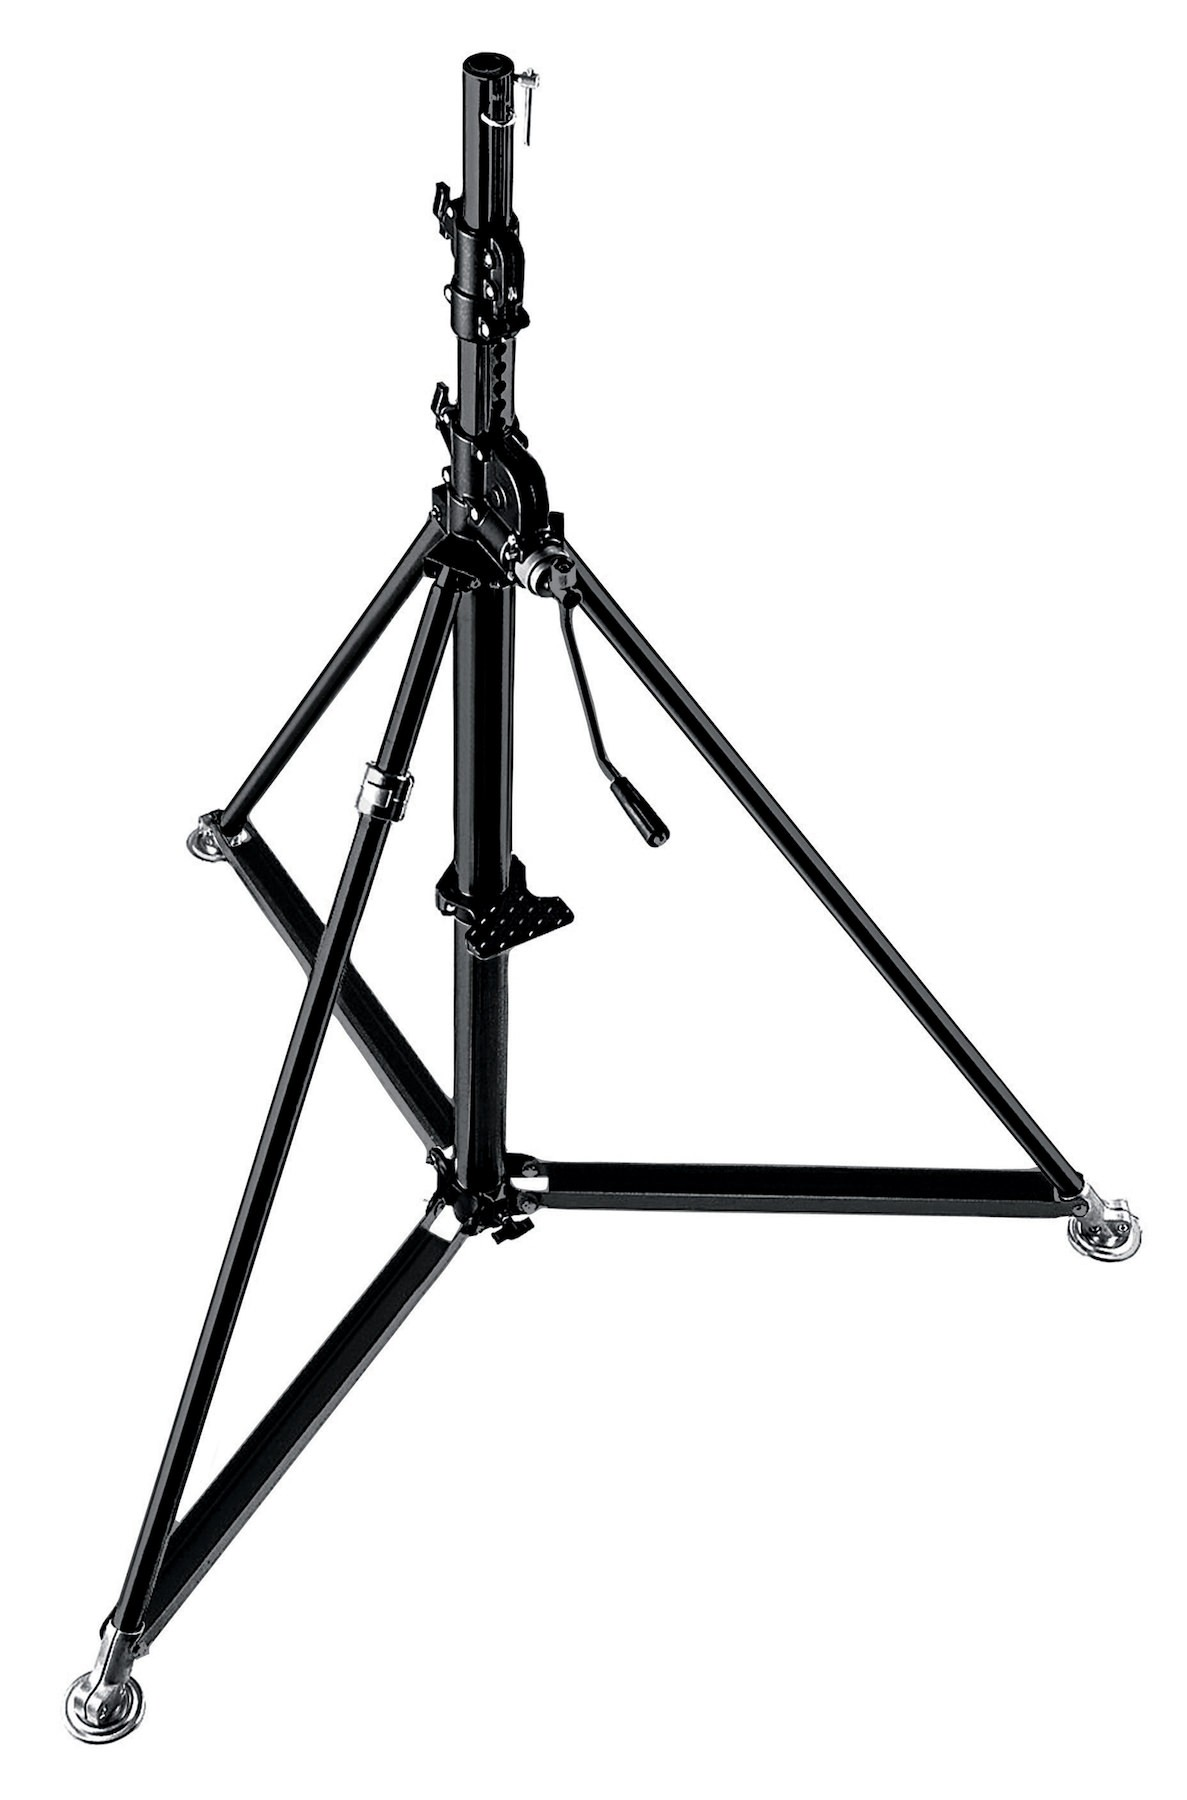 B6040, Manfrotto Stand wind-up 40, chrome, 3 sections; 1.72-3.86m; 16mm/28mm; max load 80kg (avec roues)